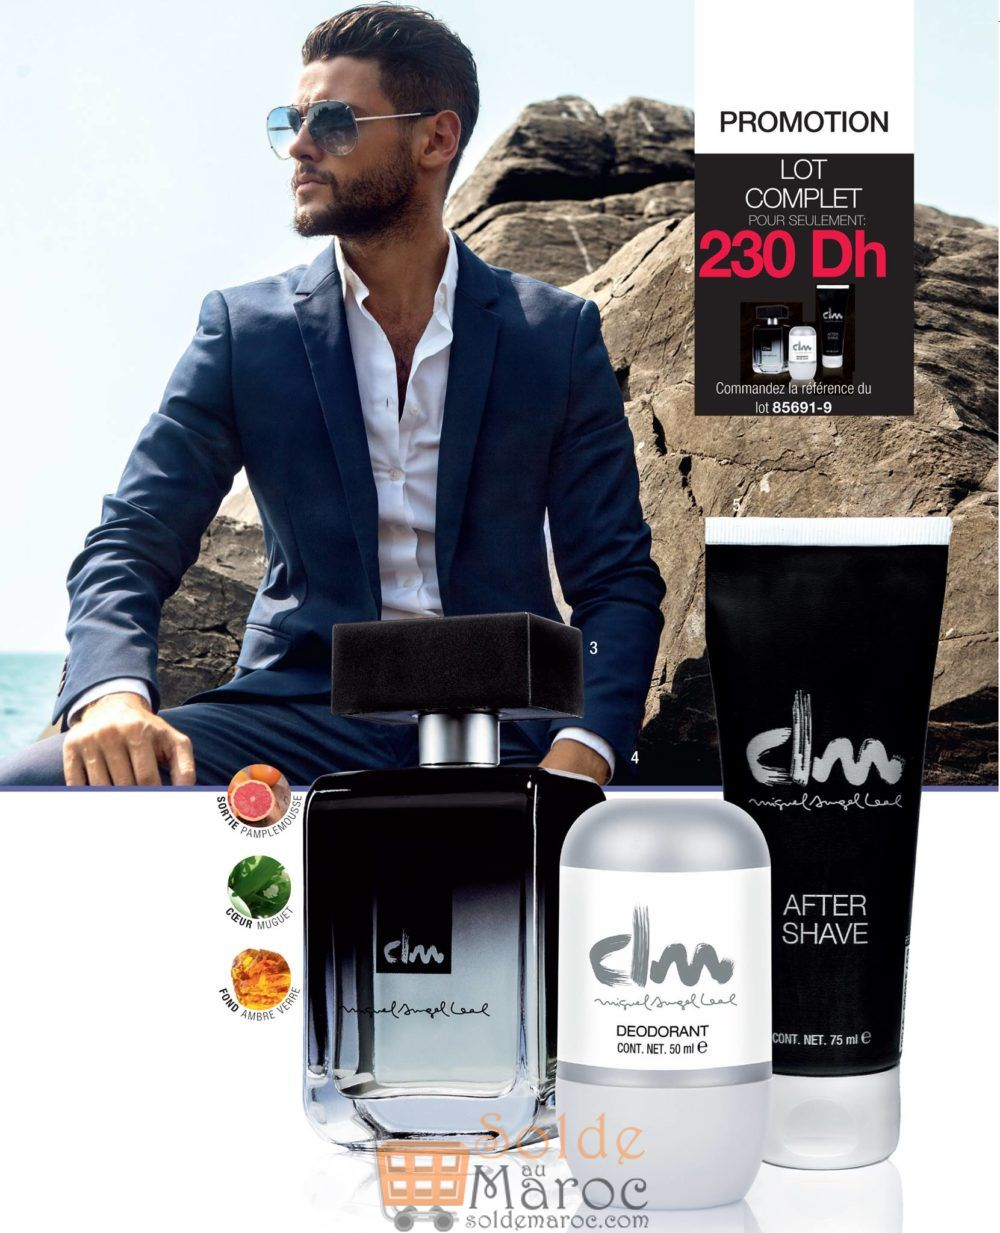 Promo Cristian Lay Maroc Pack Complet CLM 230Dhs